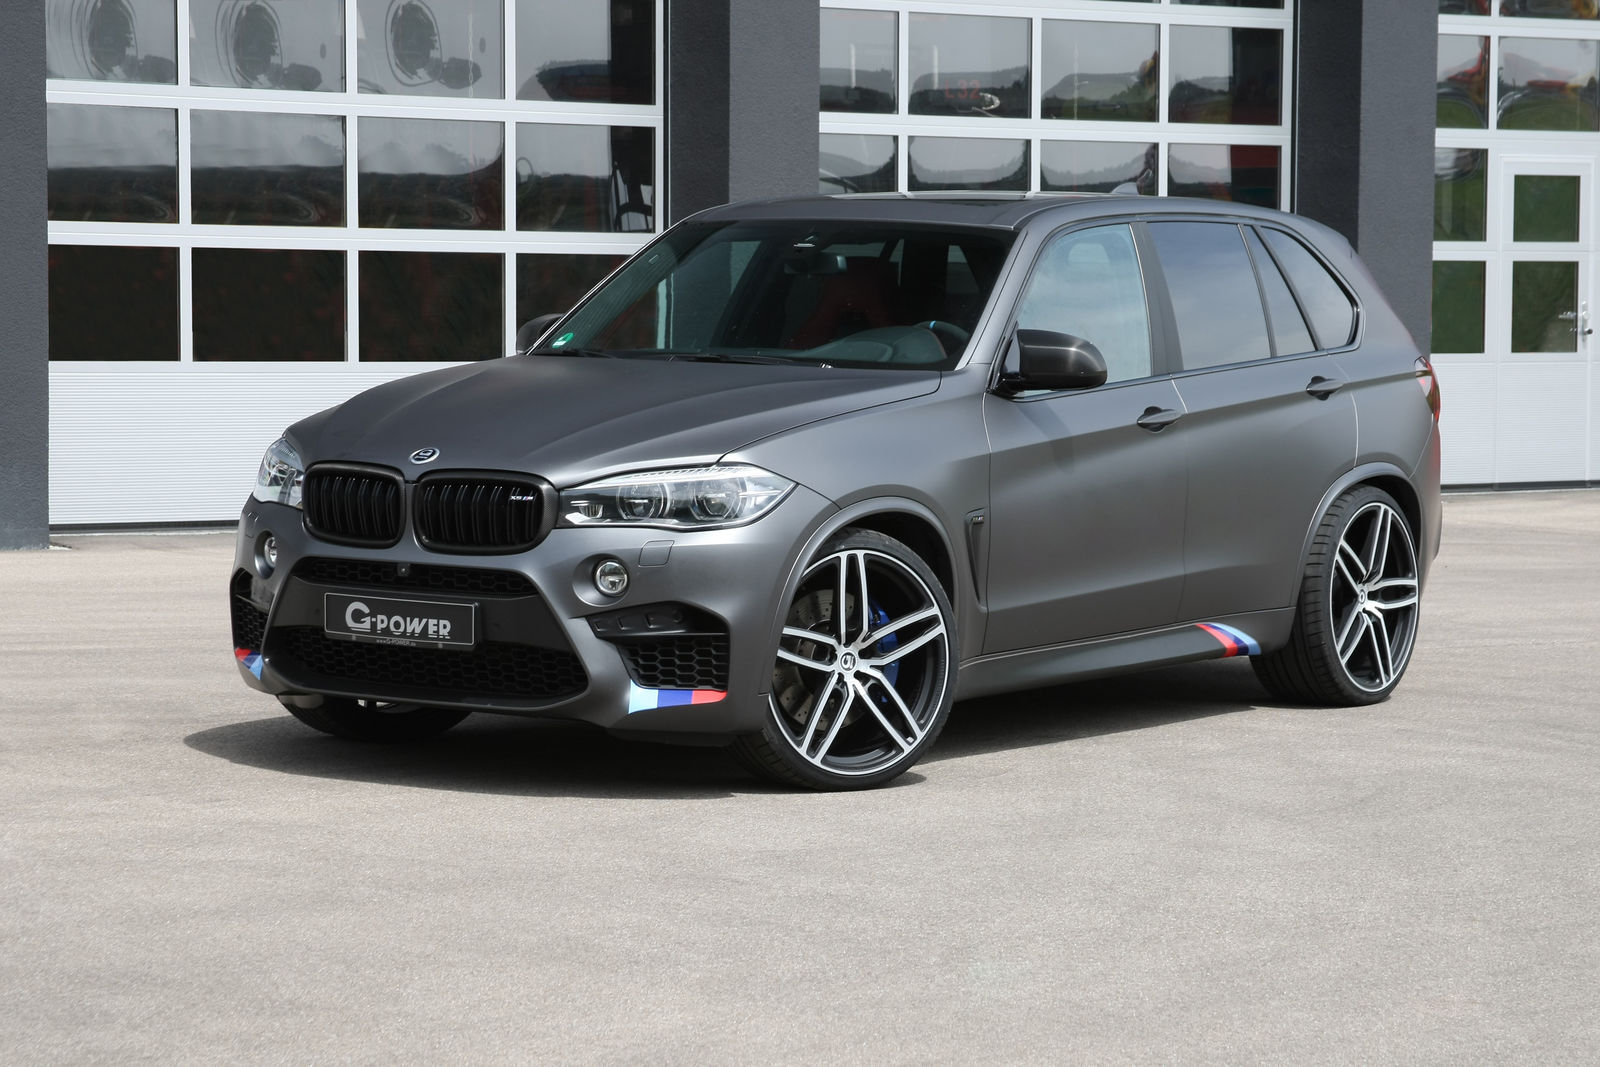 Bmw M6 0 60 >> Bmw X5 Performance Quarter Mile | Autos Post